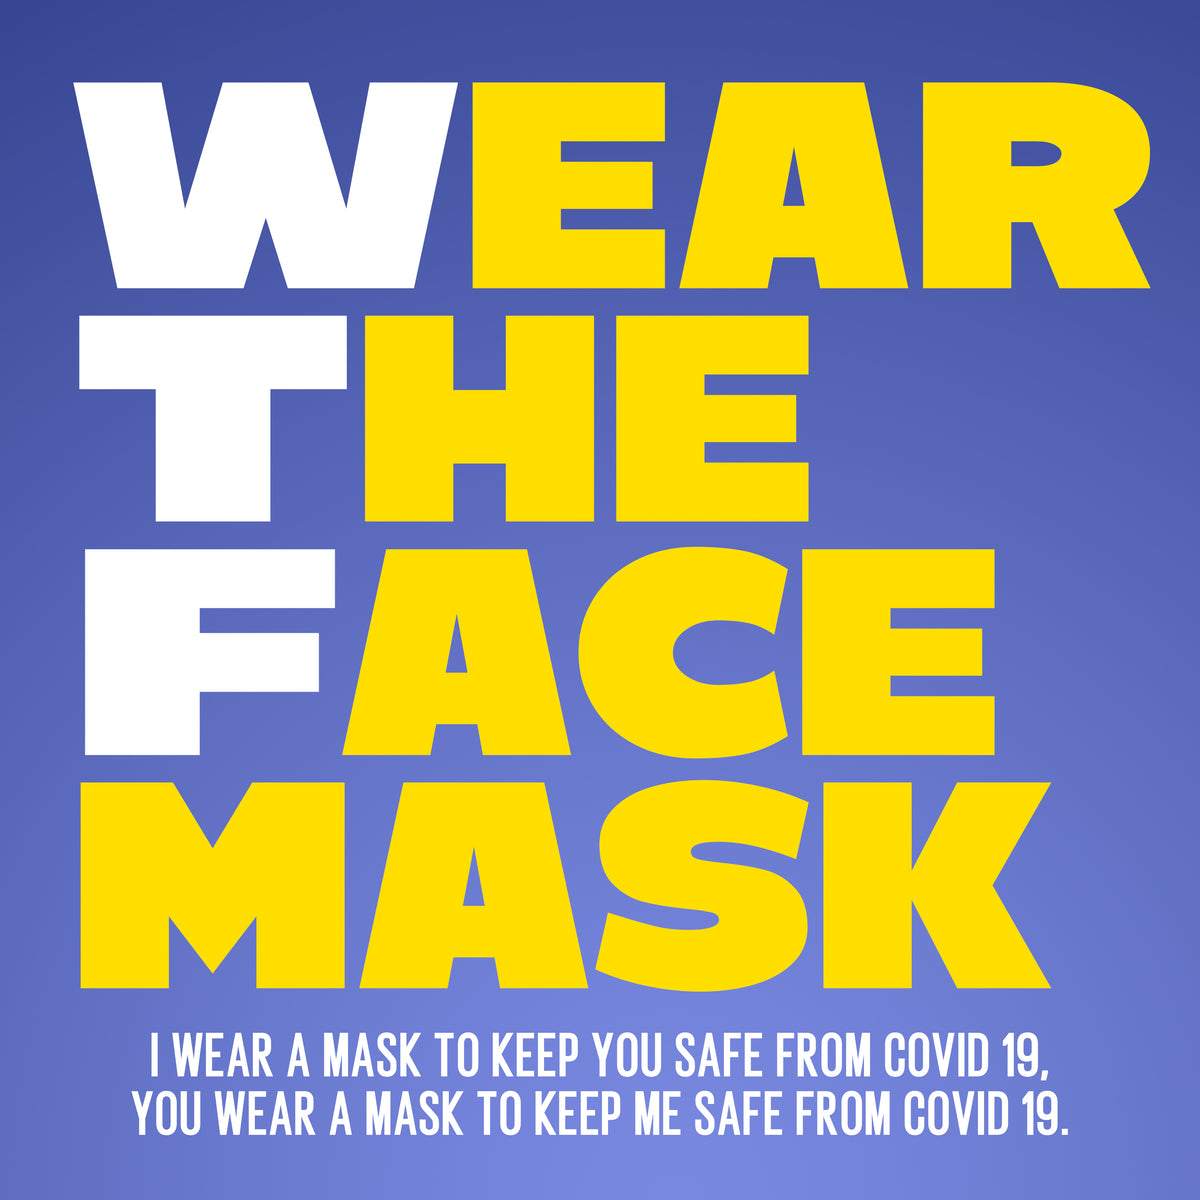 Wear The Face mask. 🚸 Protect Others in case you're infected but don't have symptoms. ❗Keep the mask on your face the entire time you're in public. 💧 Wash your hands for 20 seconds.